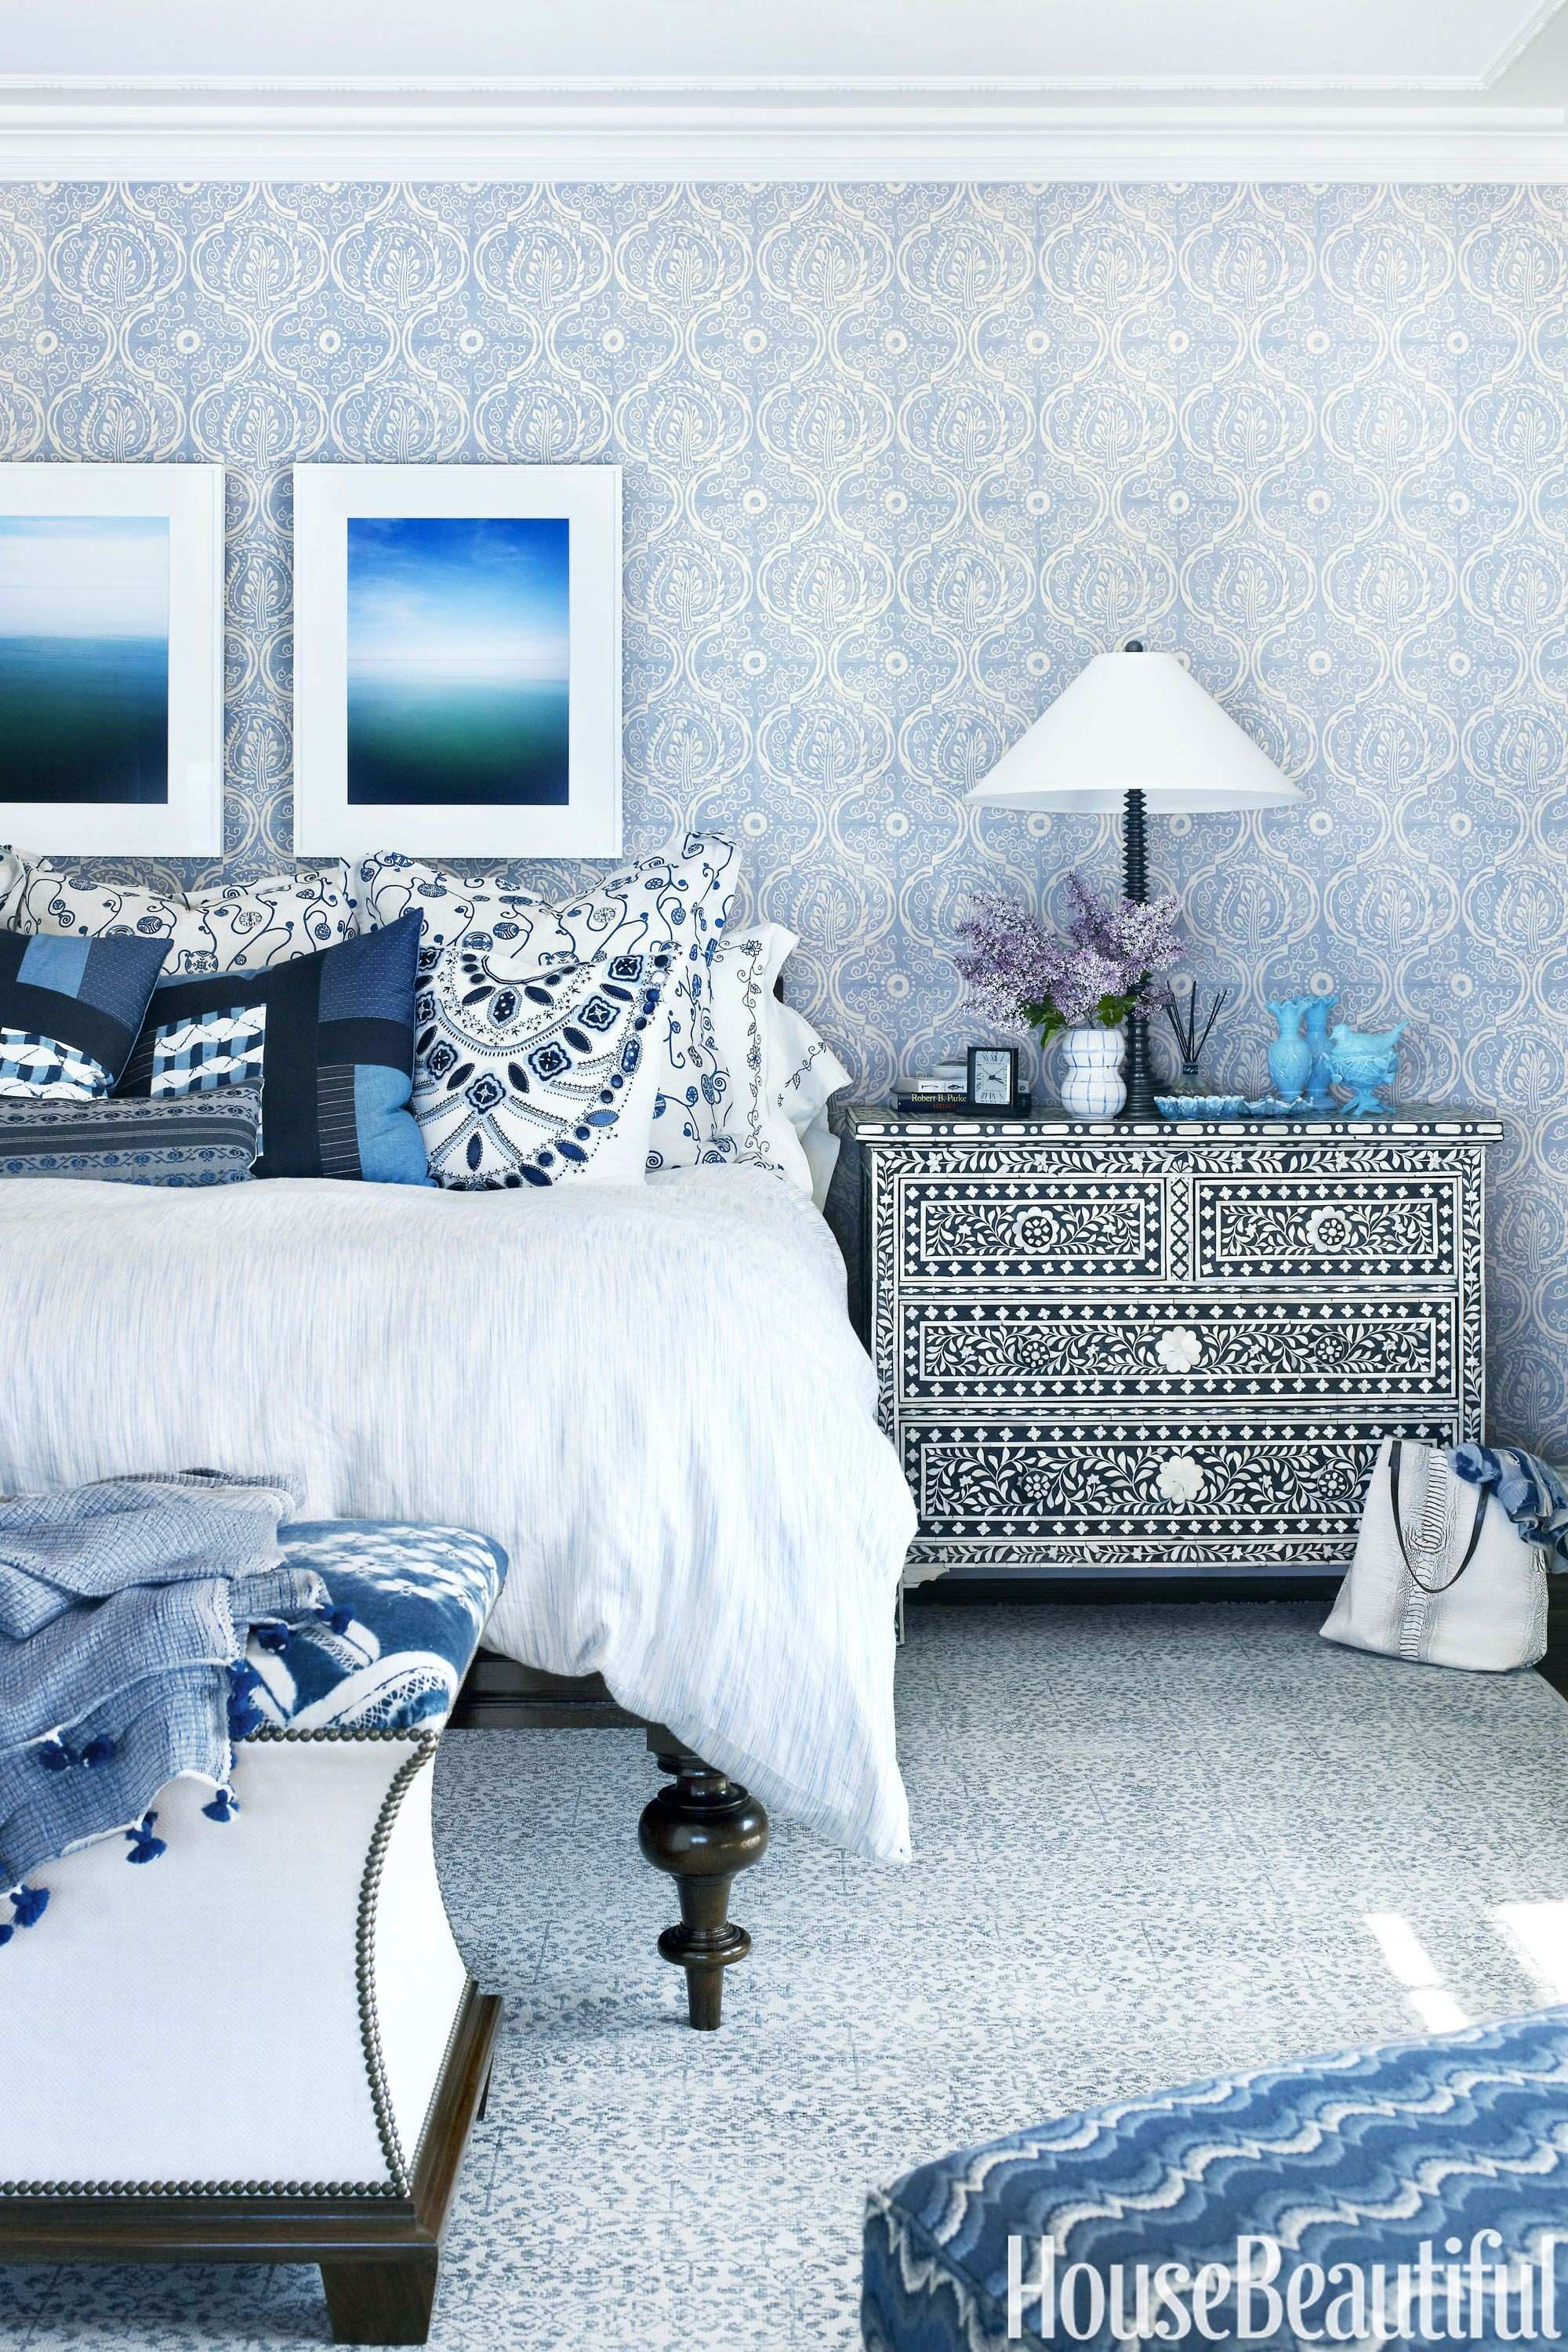 100 Stylish Bedroom Decorating Ideas Design Tips for Modern Bedrooms